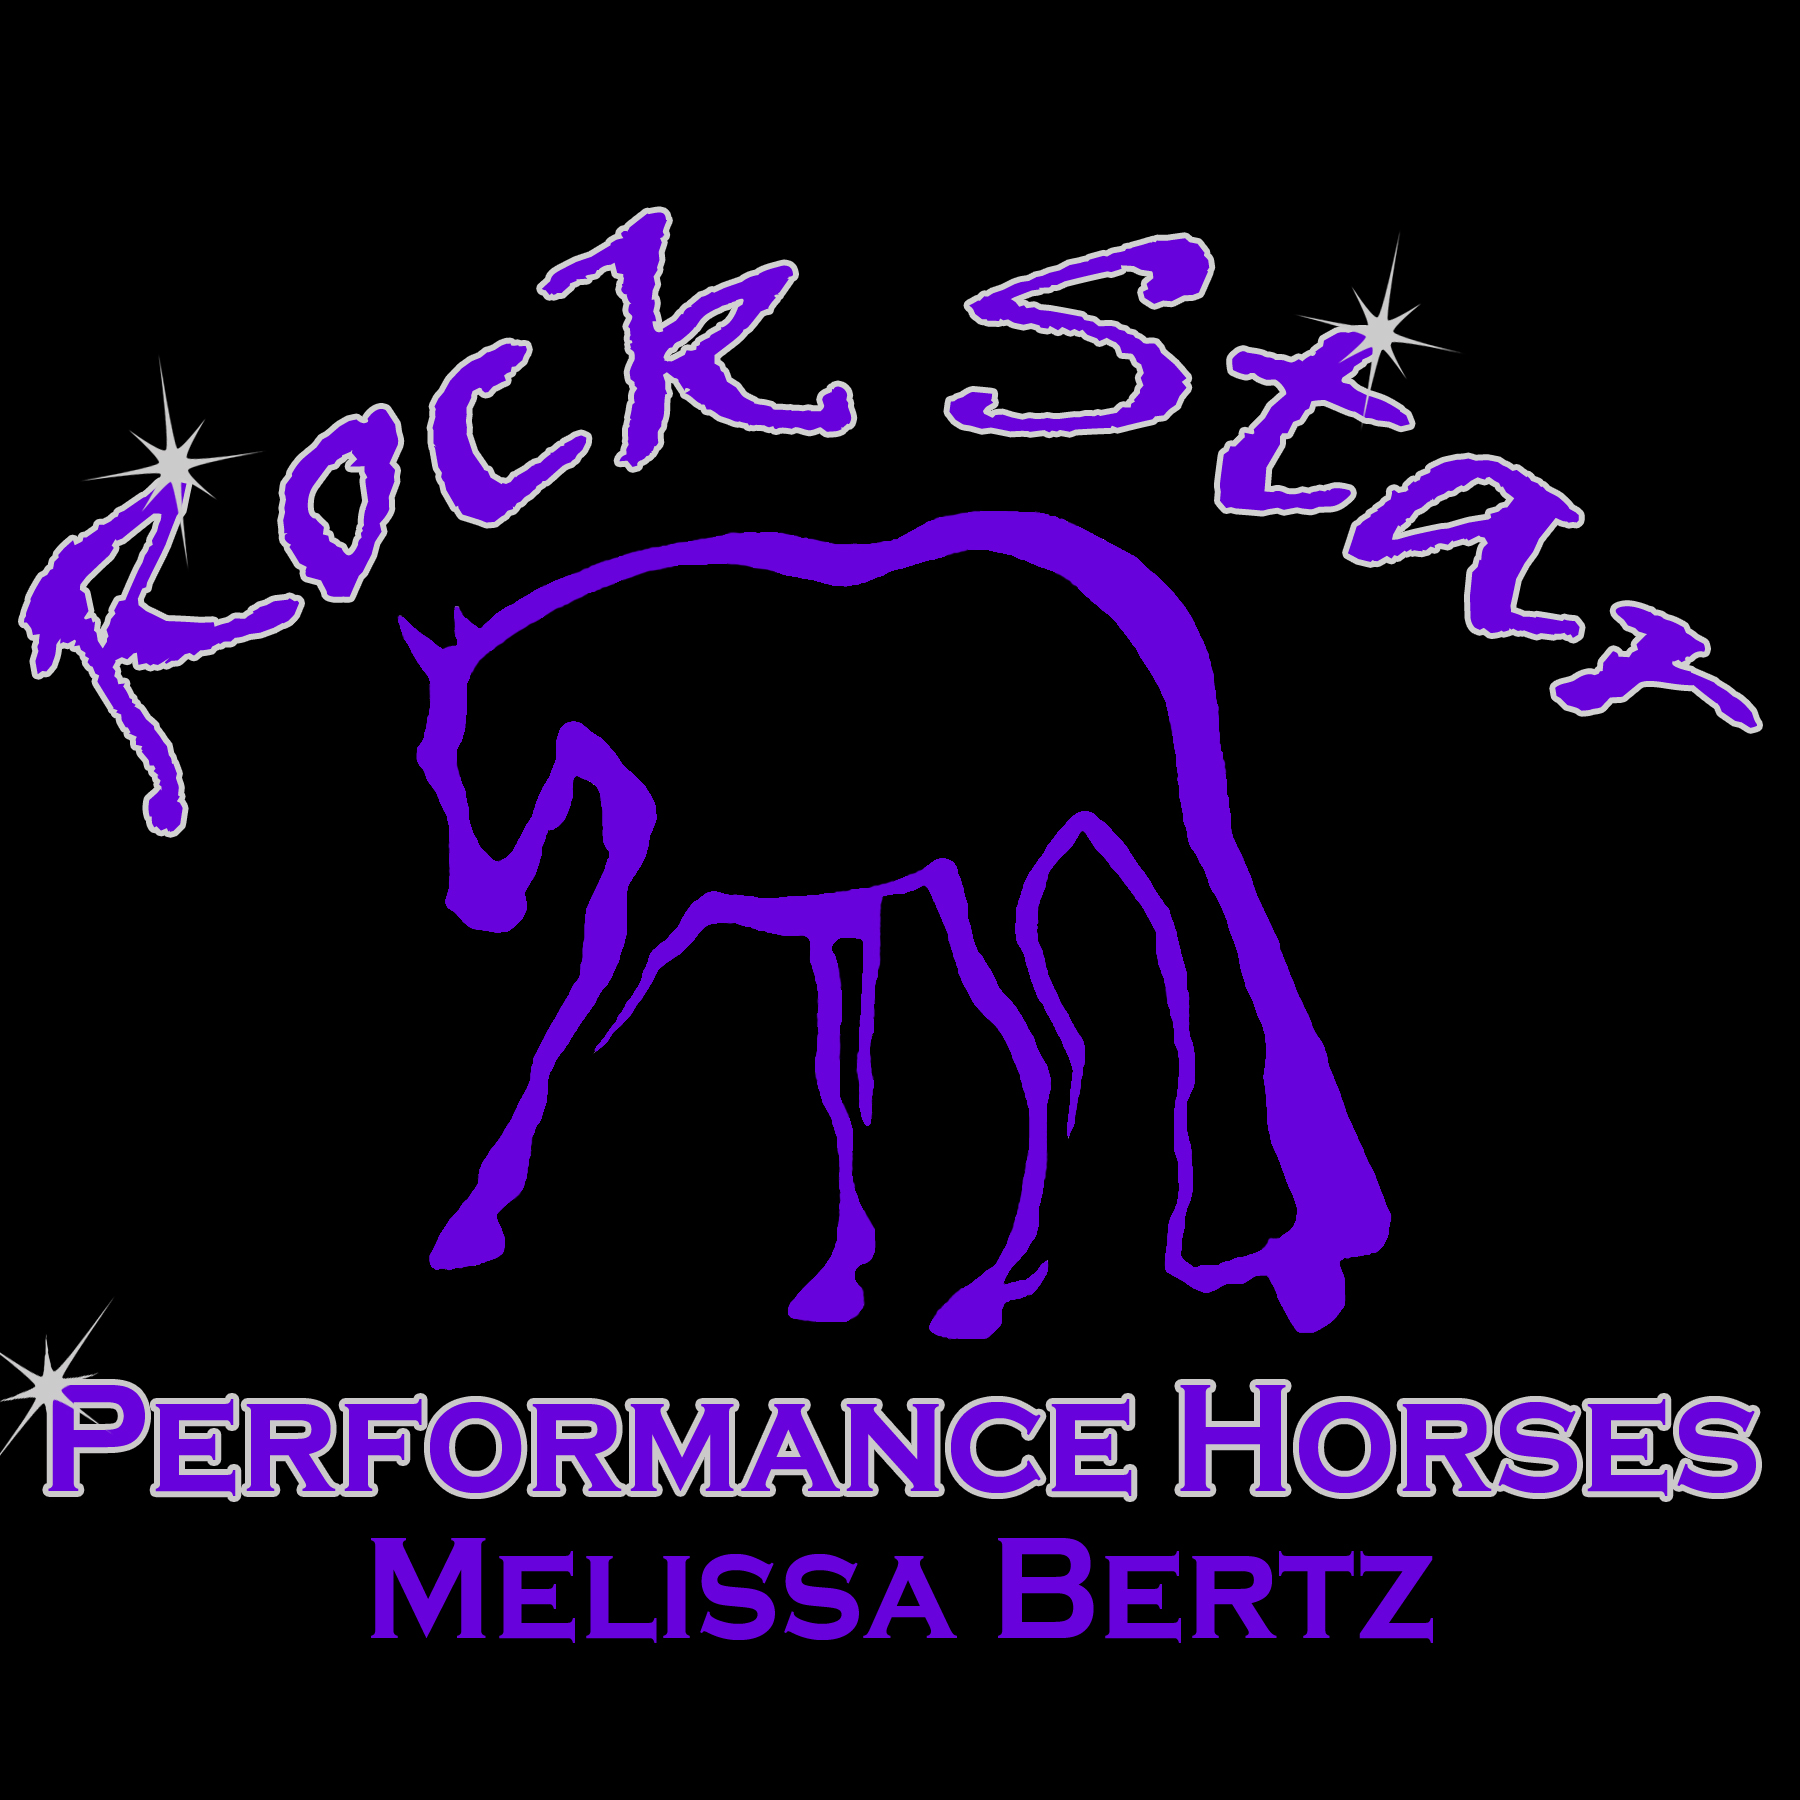 Rock Star Performance Horses 2013 Logo